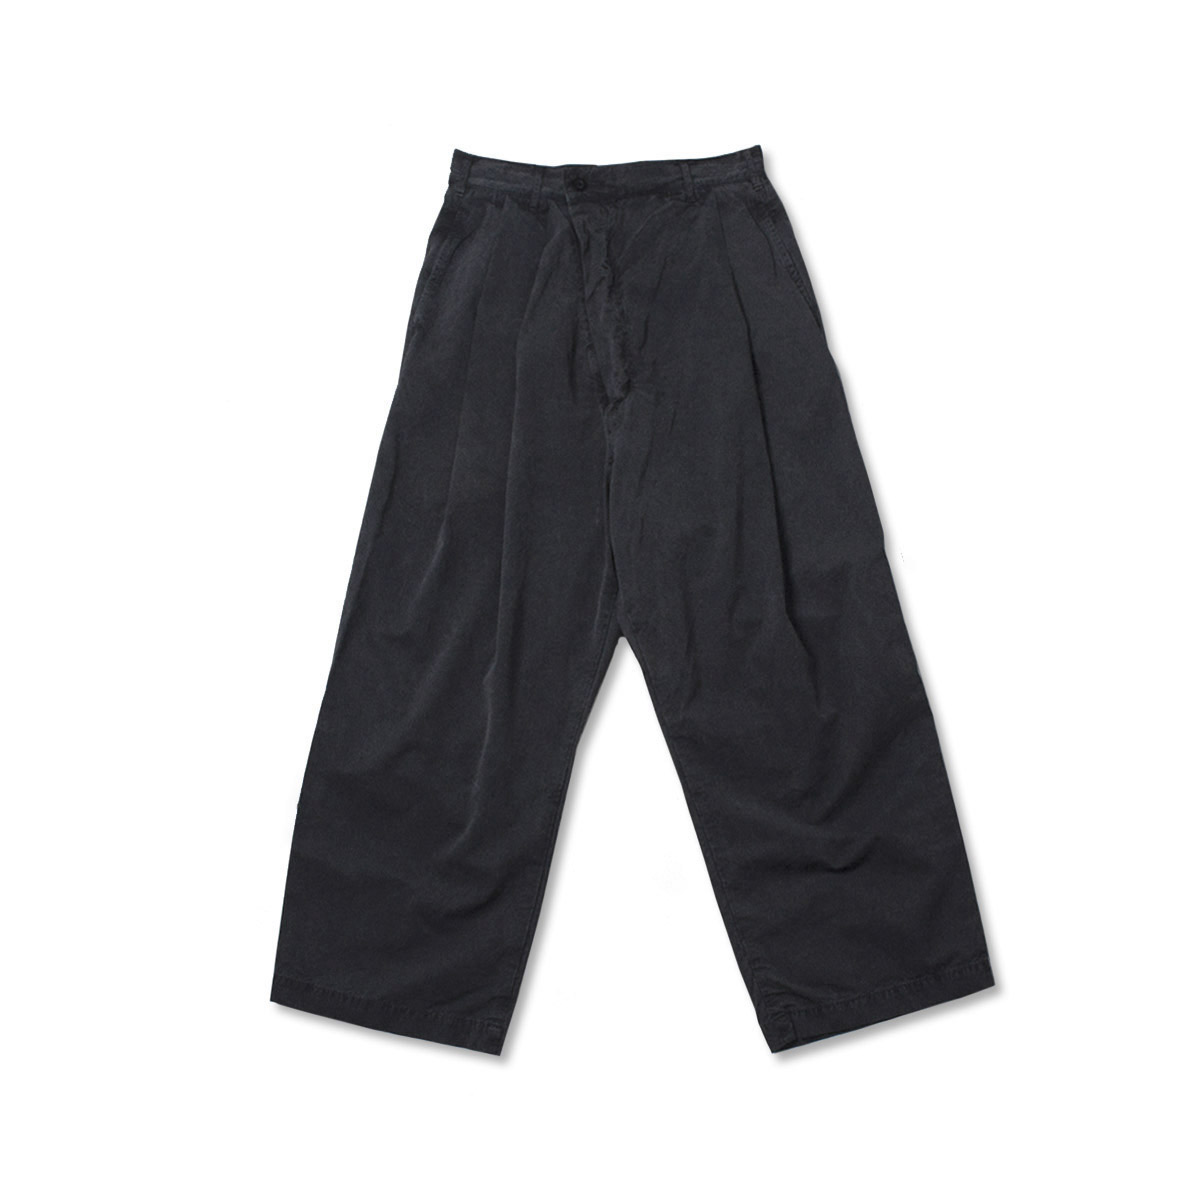 [OUTIL] PANTALON CUERS 'BLACK'